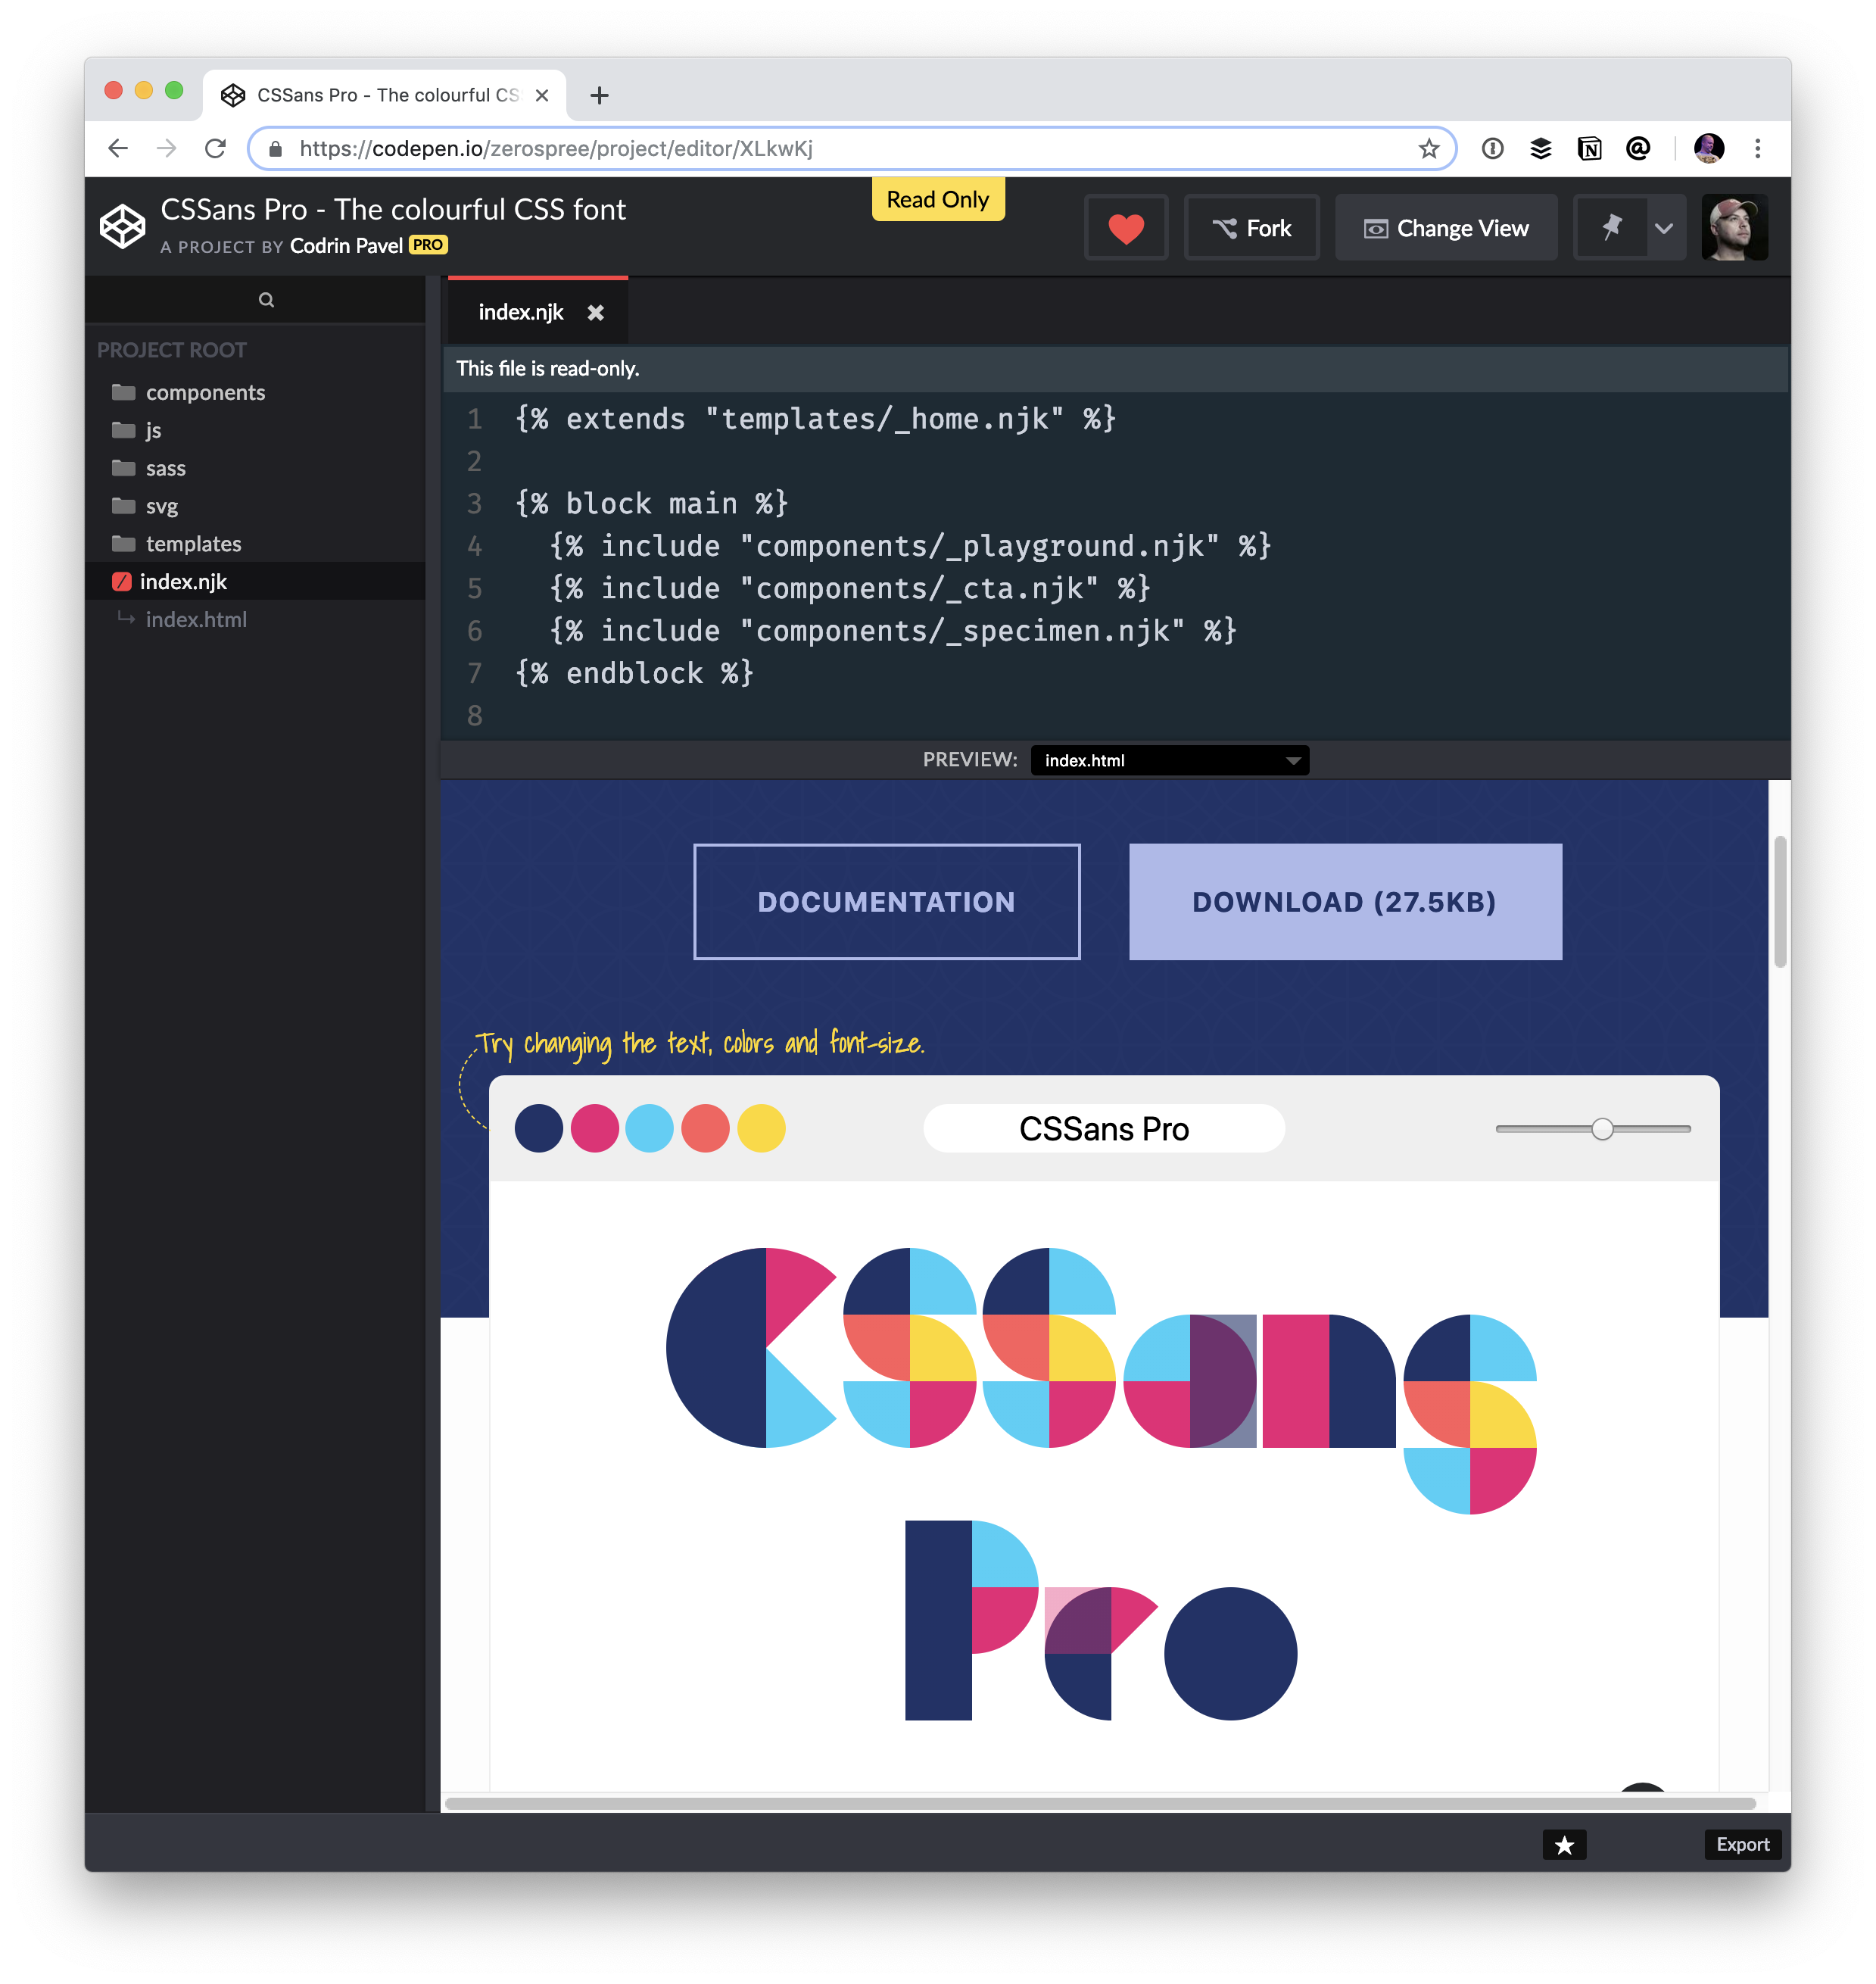 Colorful Typographic Experiments | CSS-Tricks